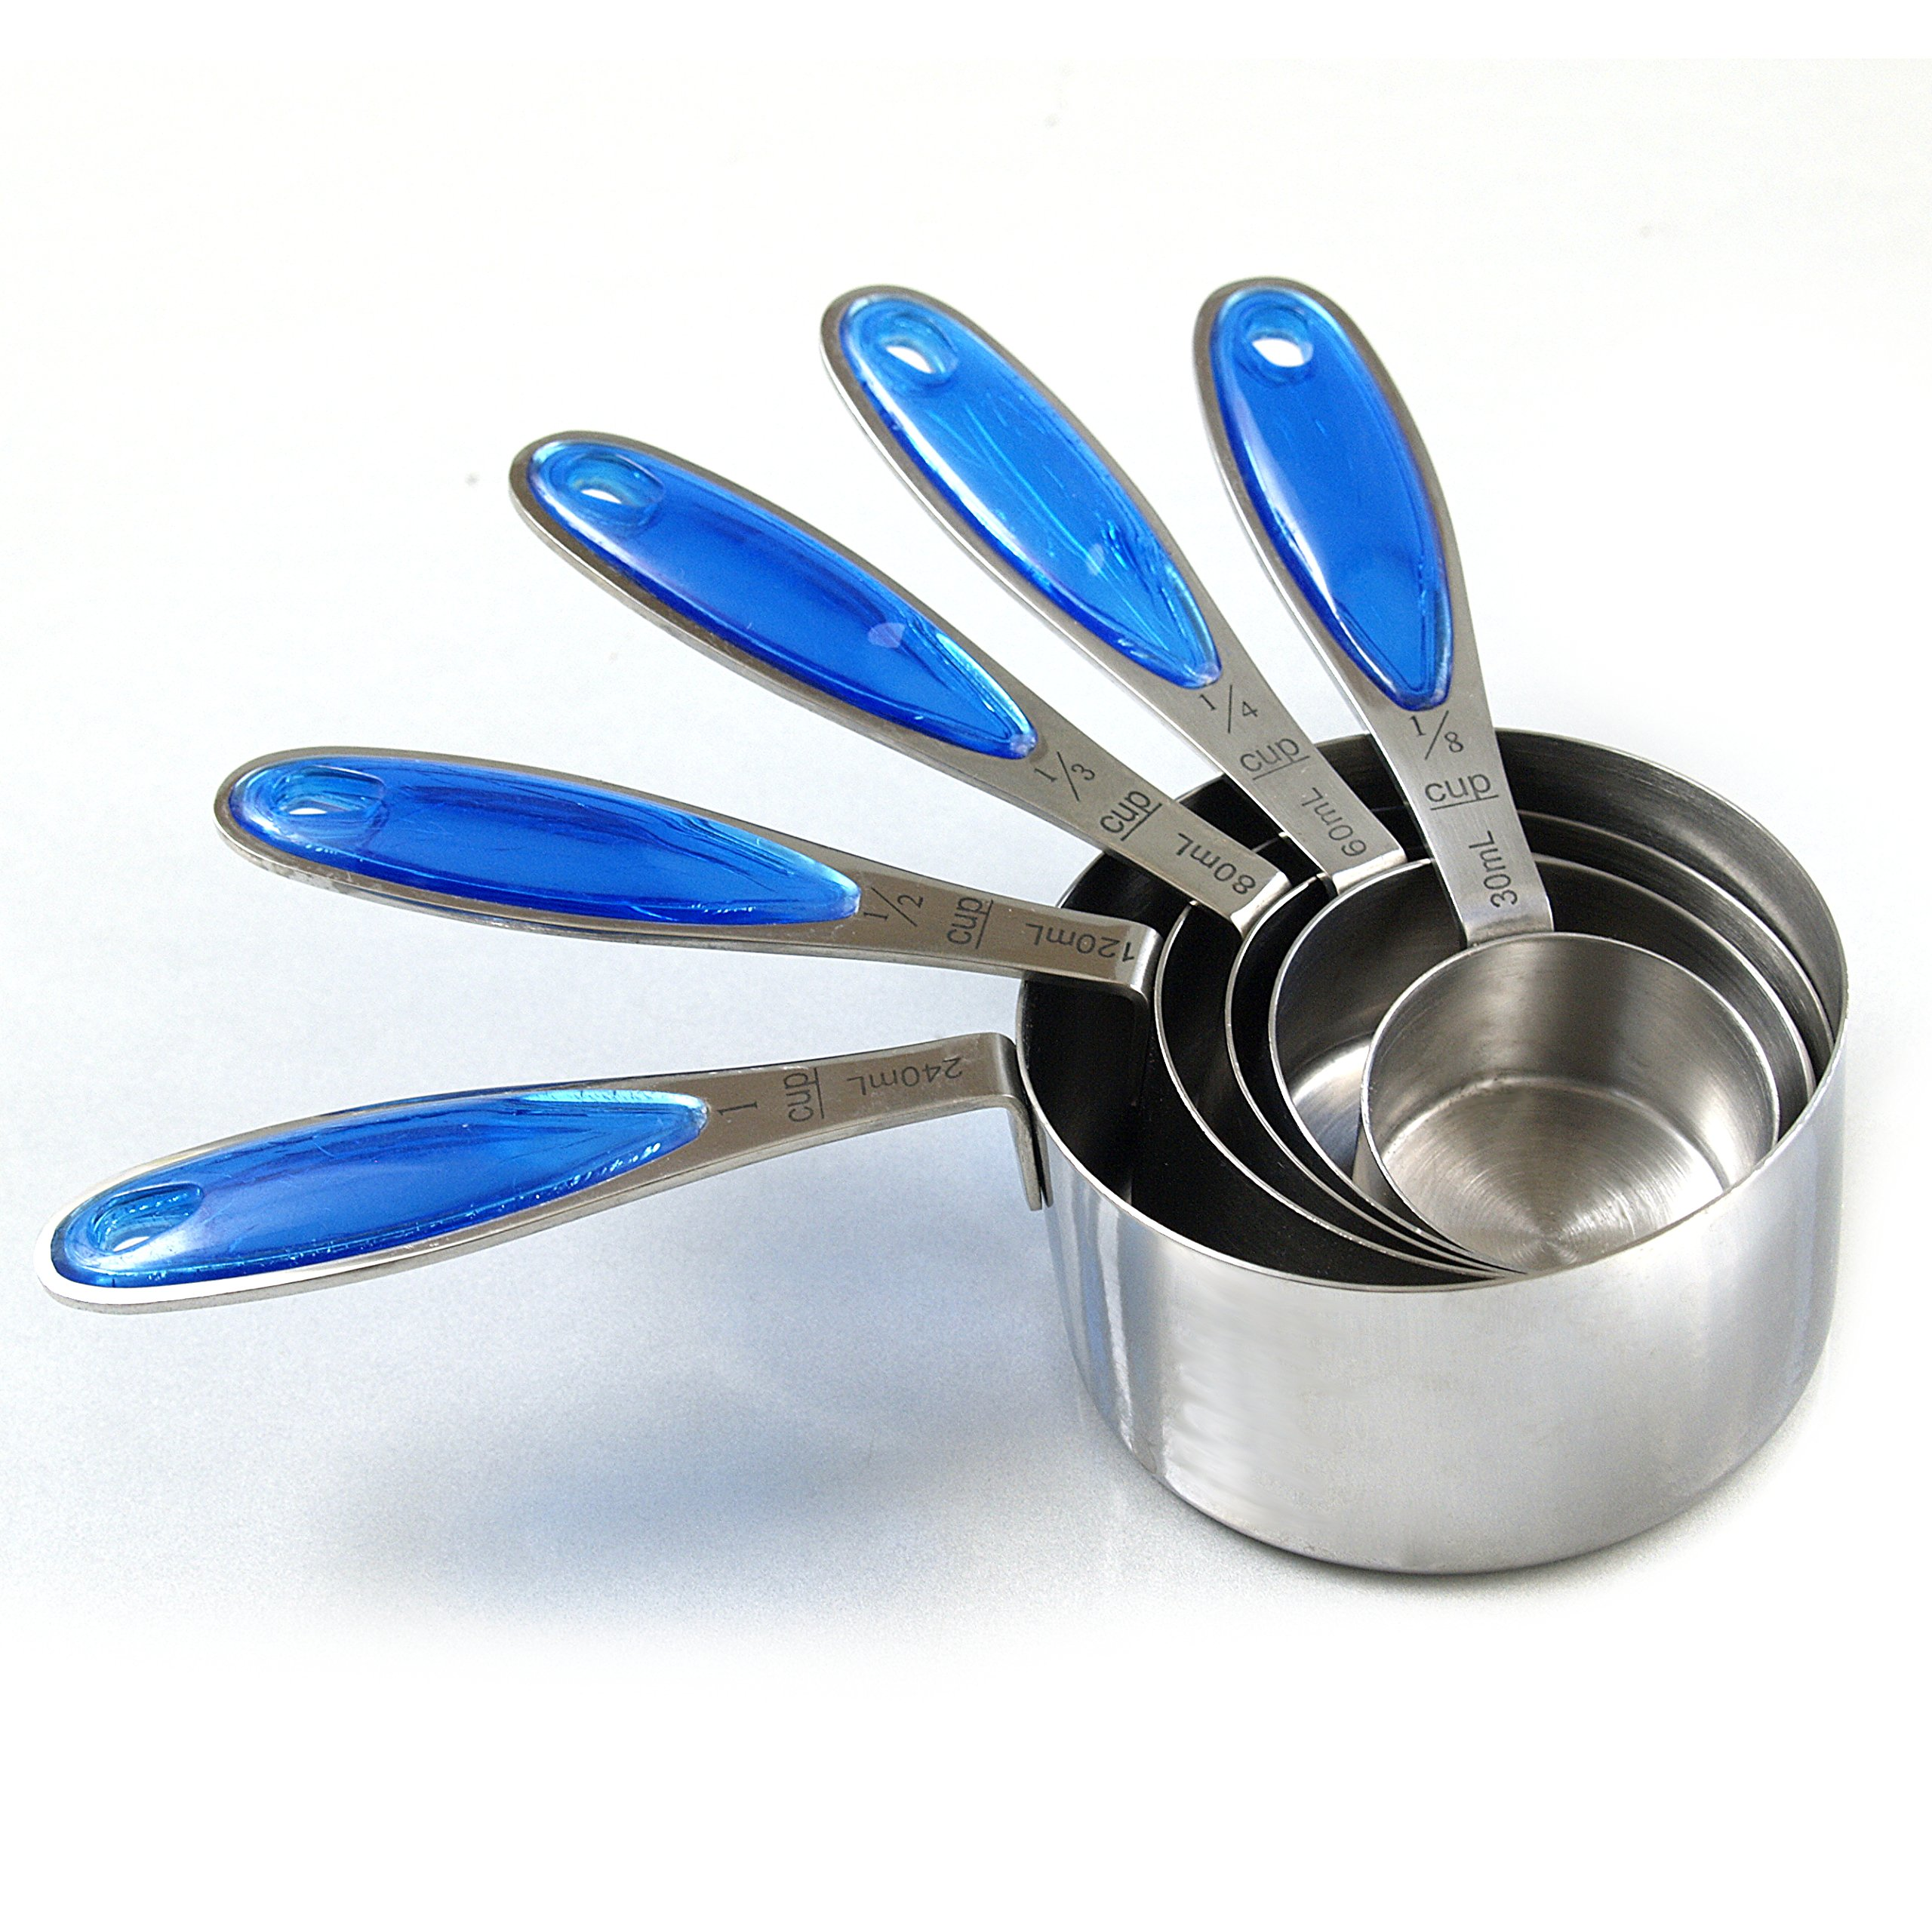 RSVP Endurance Splash 18/10 Stainless Steel Measuring Cups with Blue Grip by RSVP